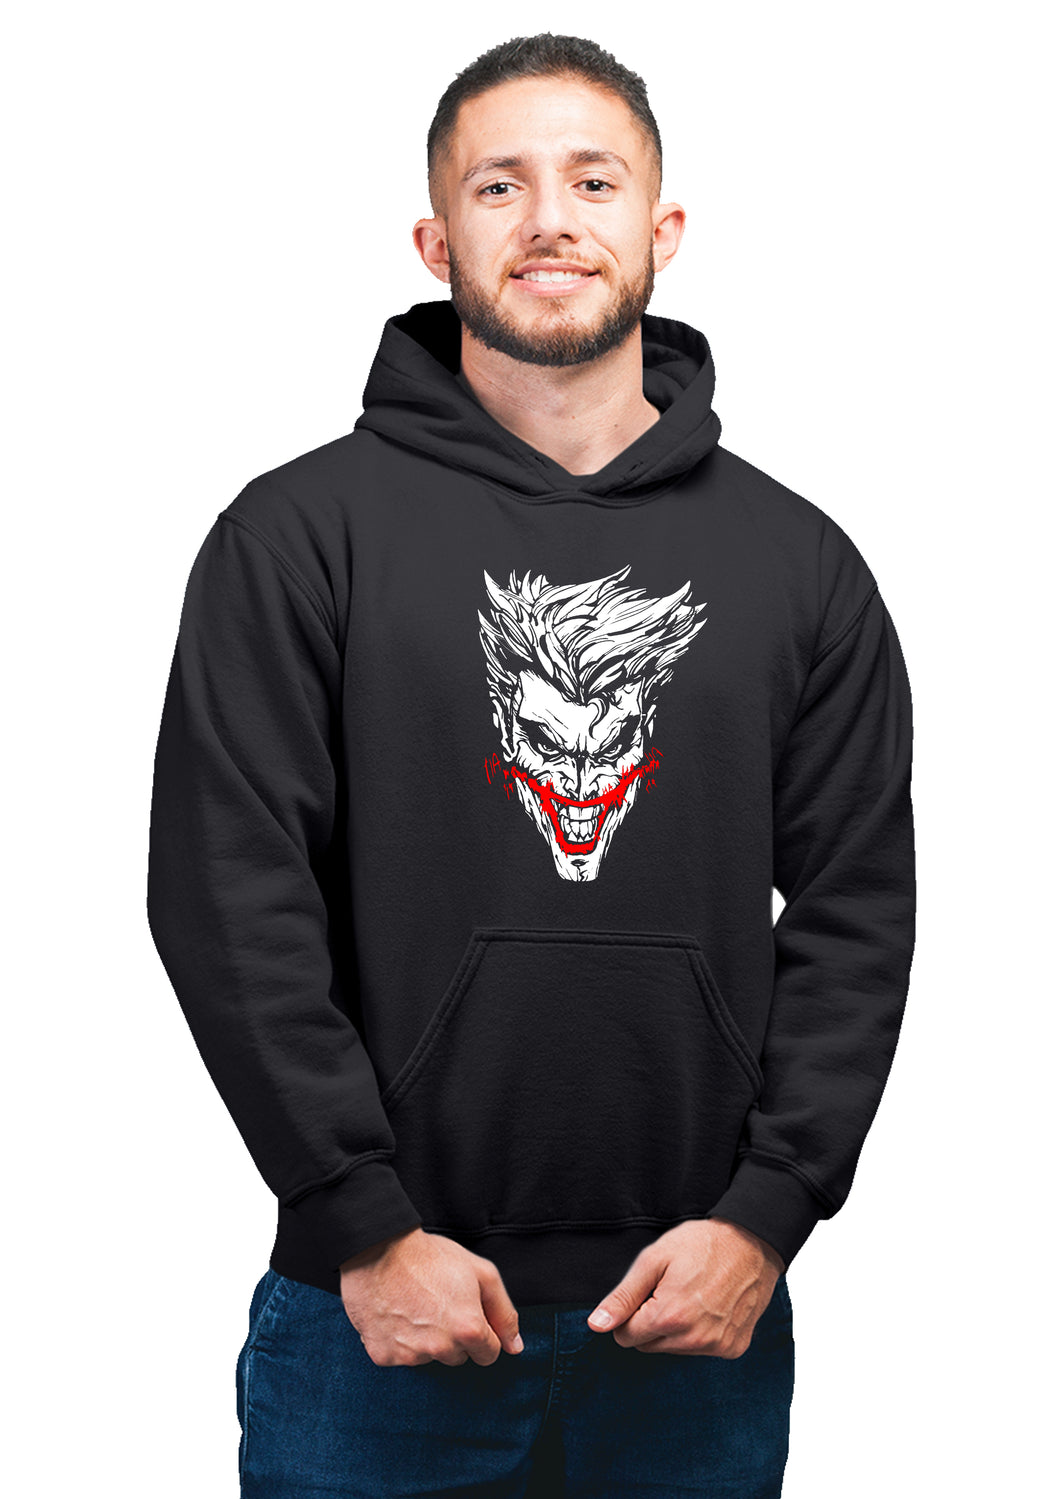 Joker Superhero  Unisex 100% Cotton Printed Hoodie